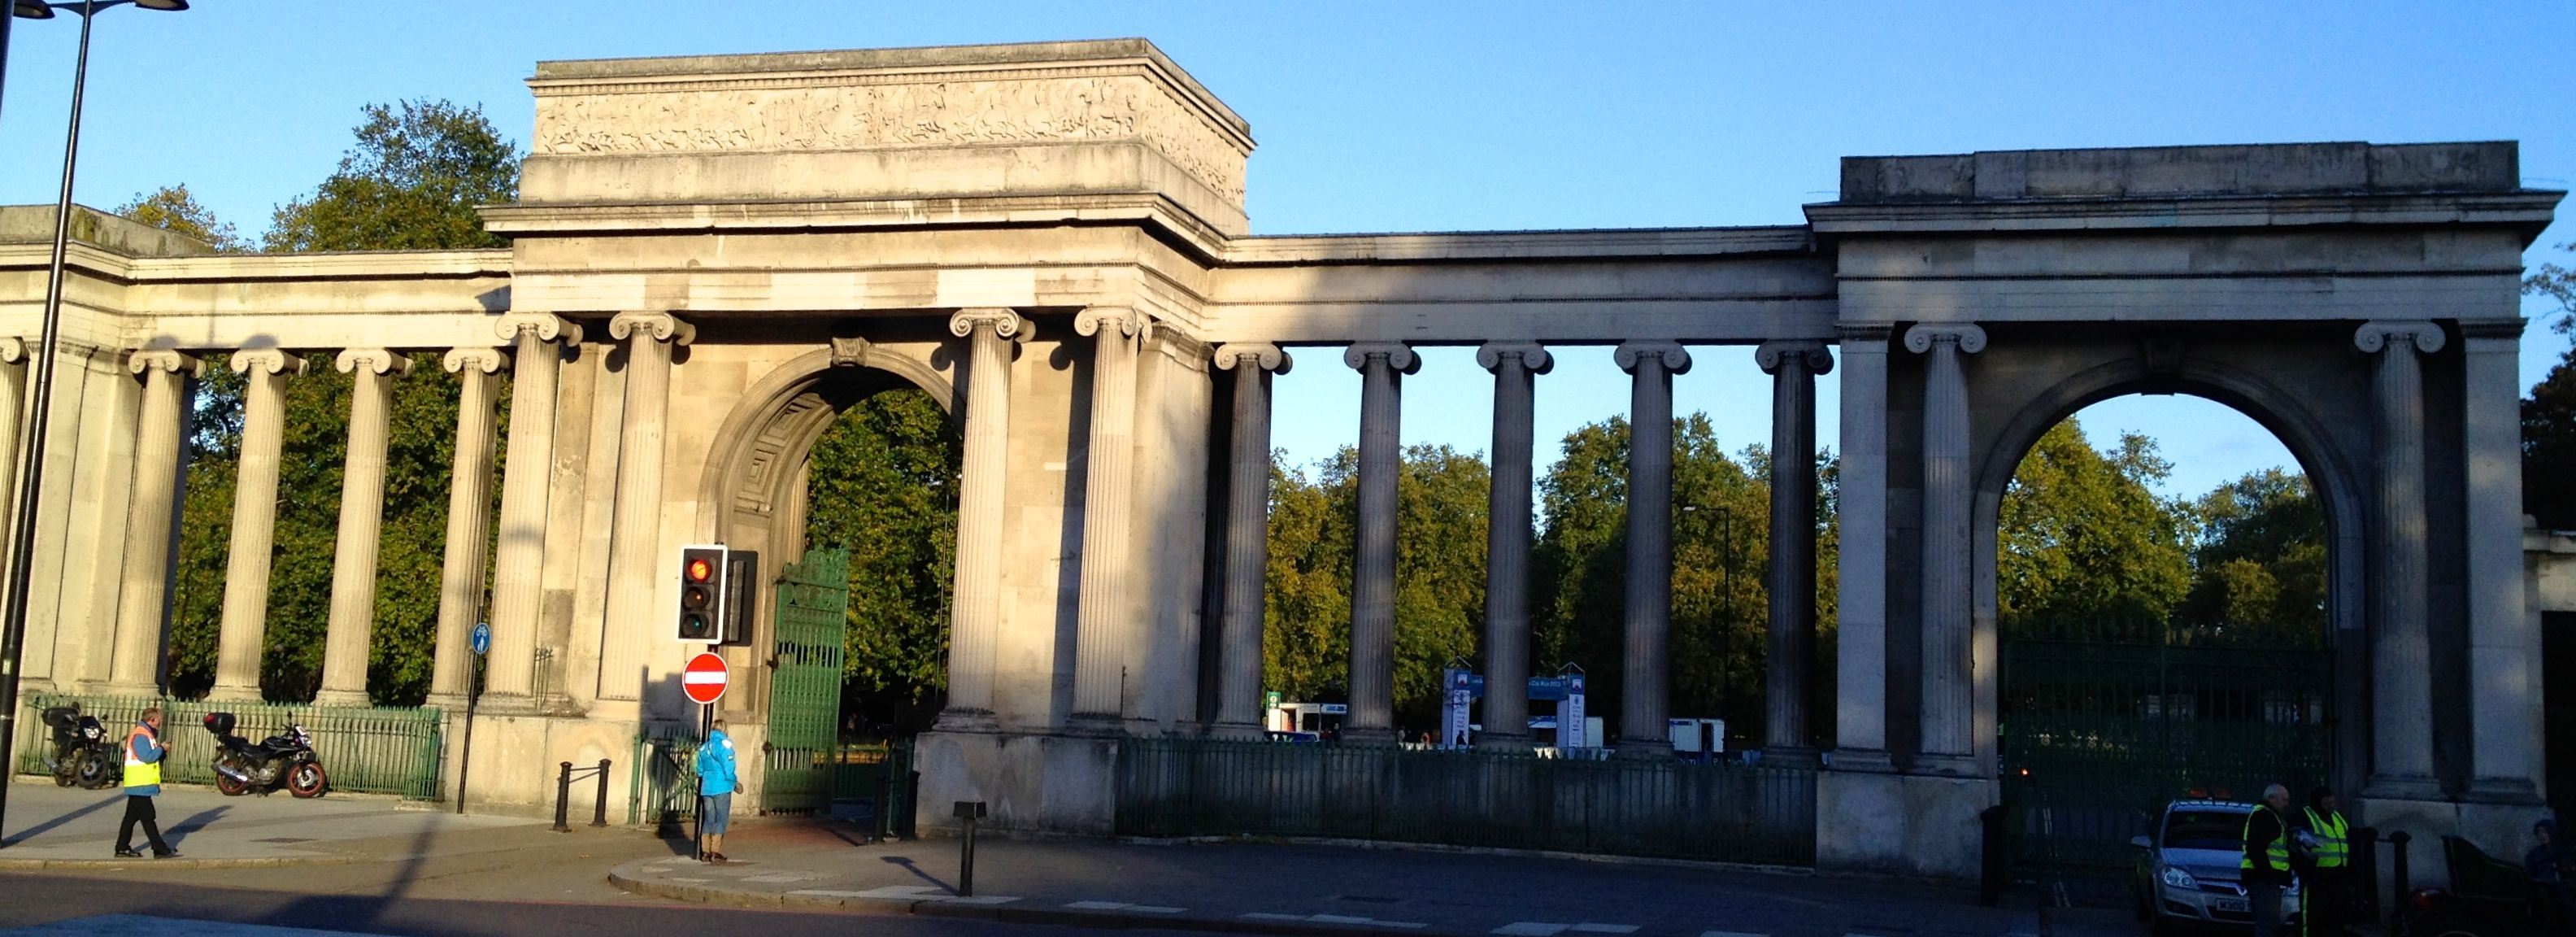 Hyde Park Corner Entry Gate